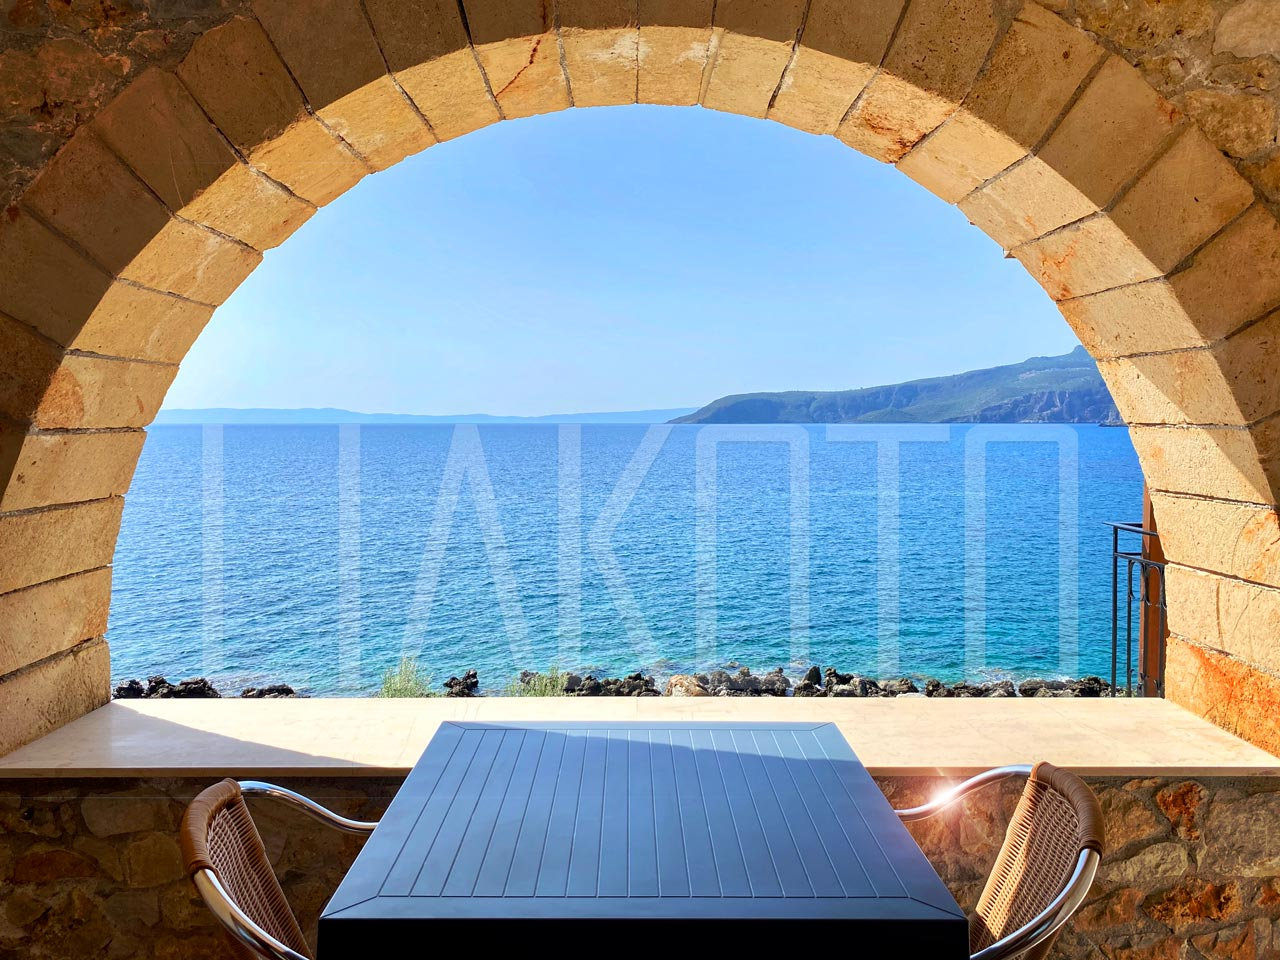 Liakoto Hotel in beautiful Kardamili, Greece